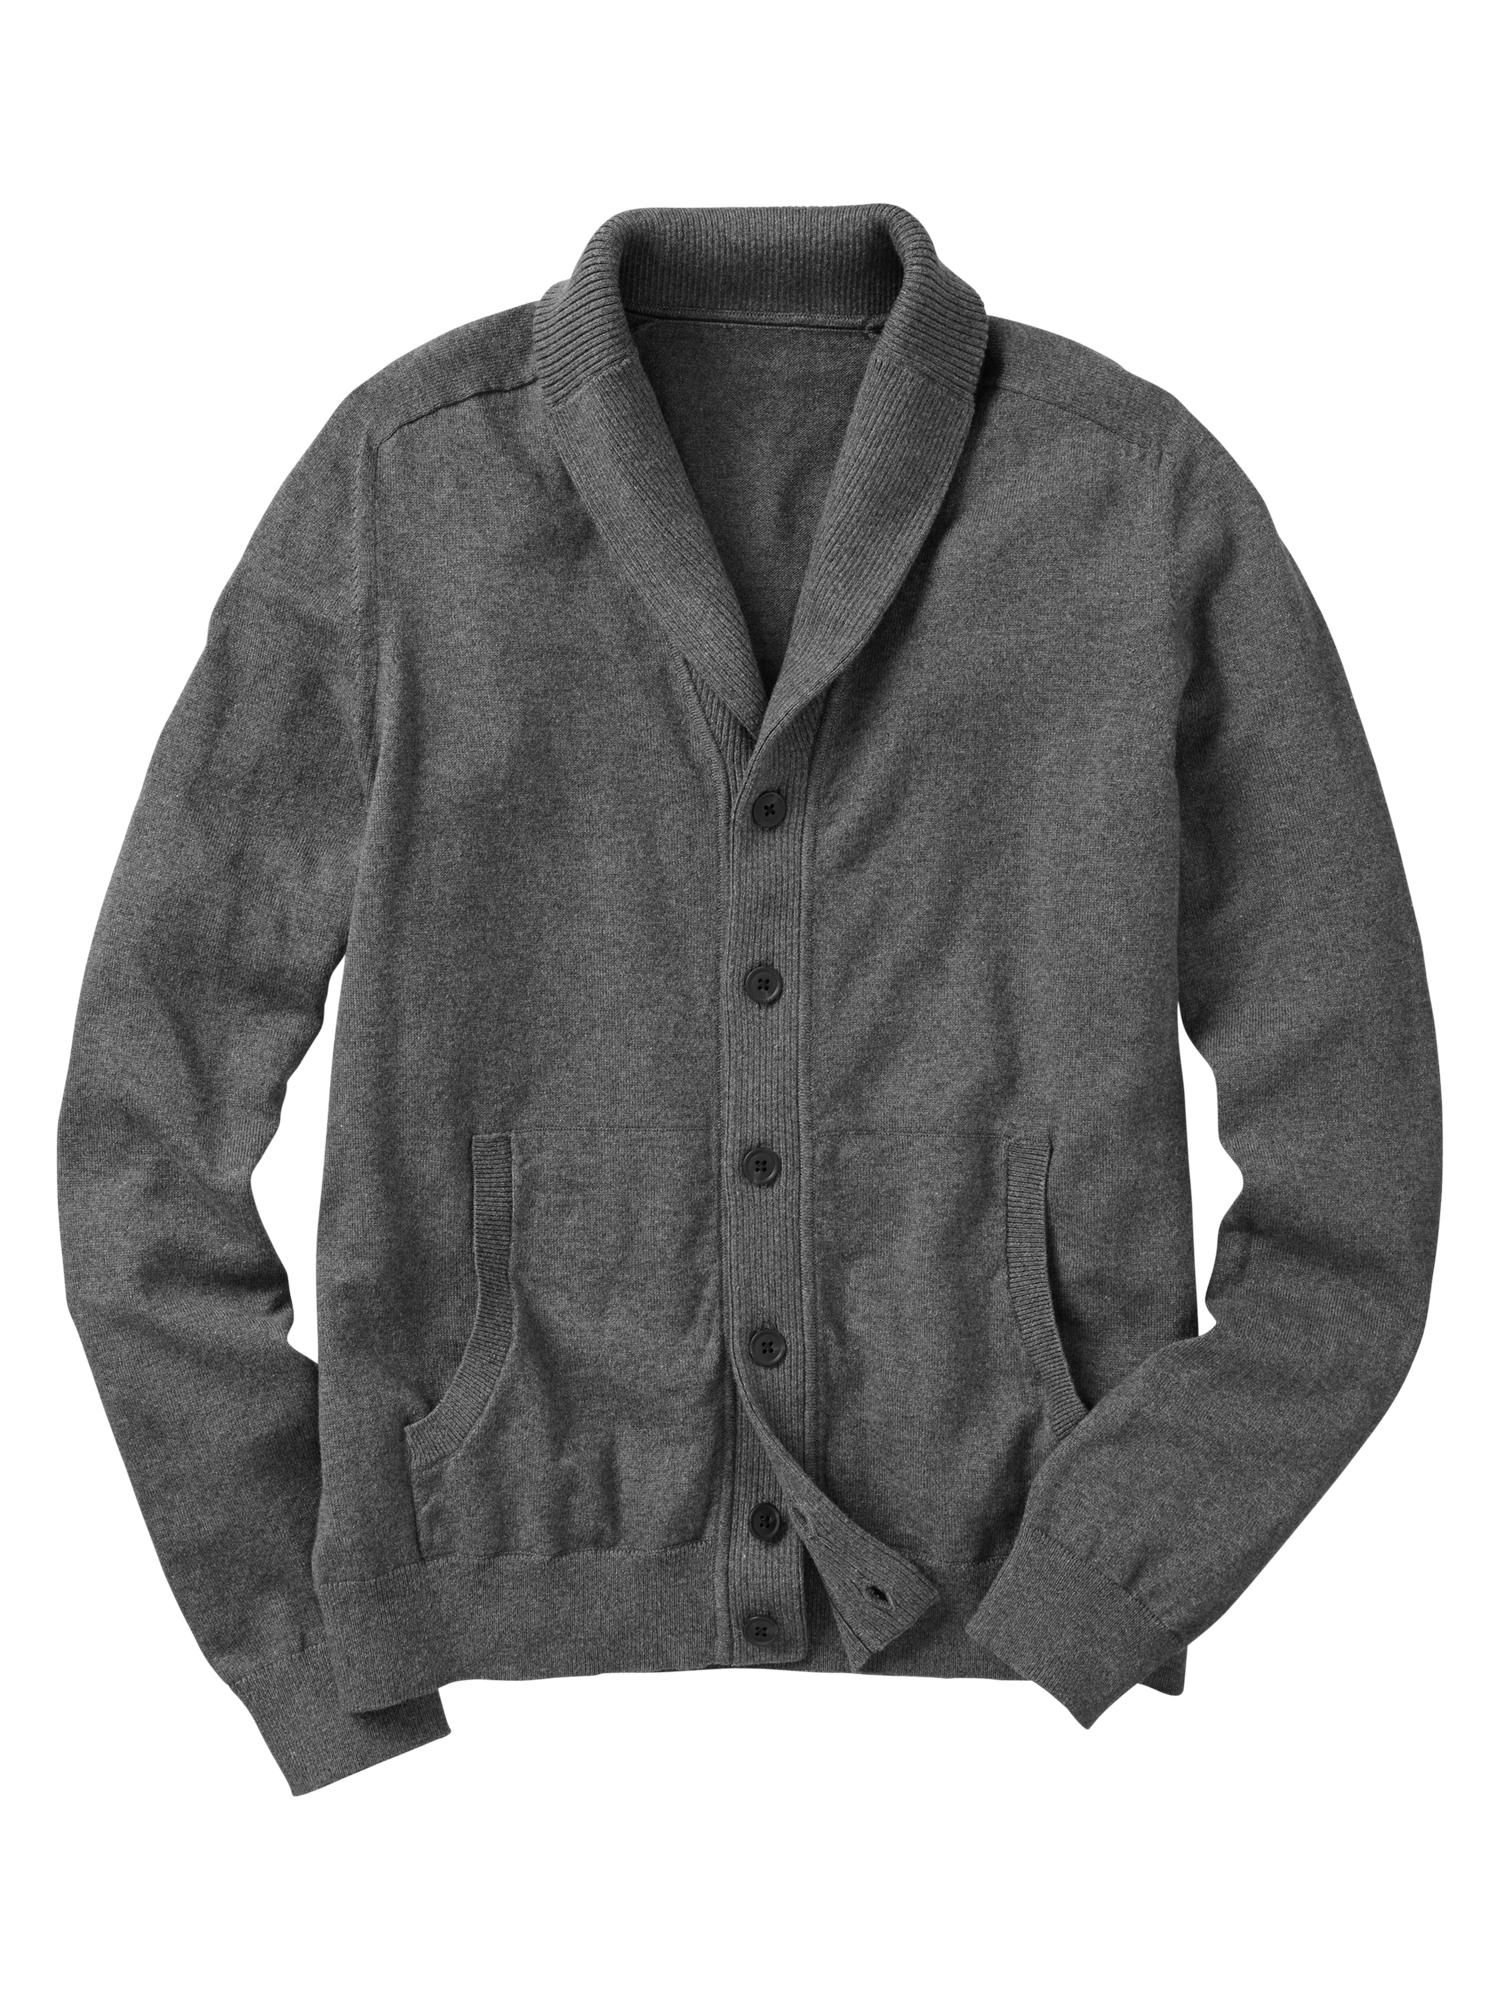 Gap | Cotton cashmere shawl cardigan. Men's cardigan, but a size ...